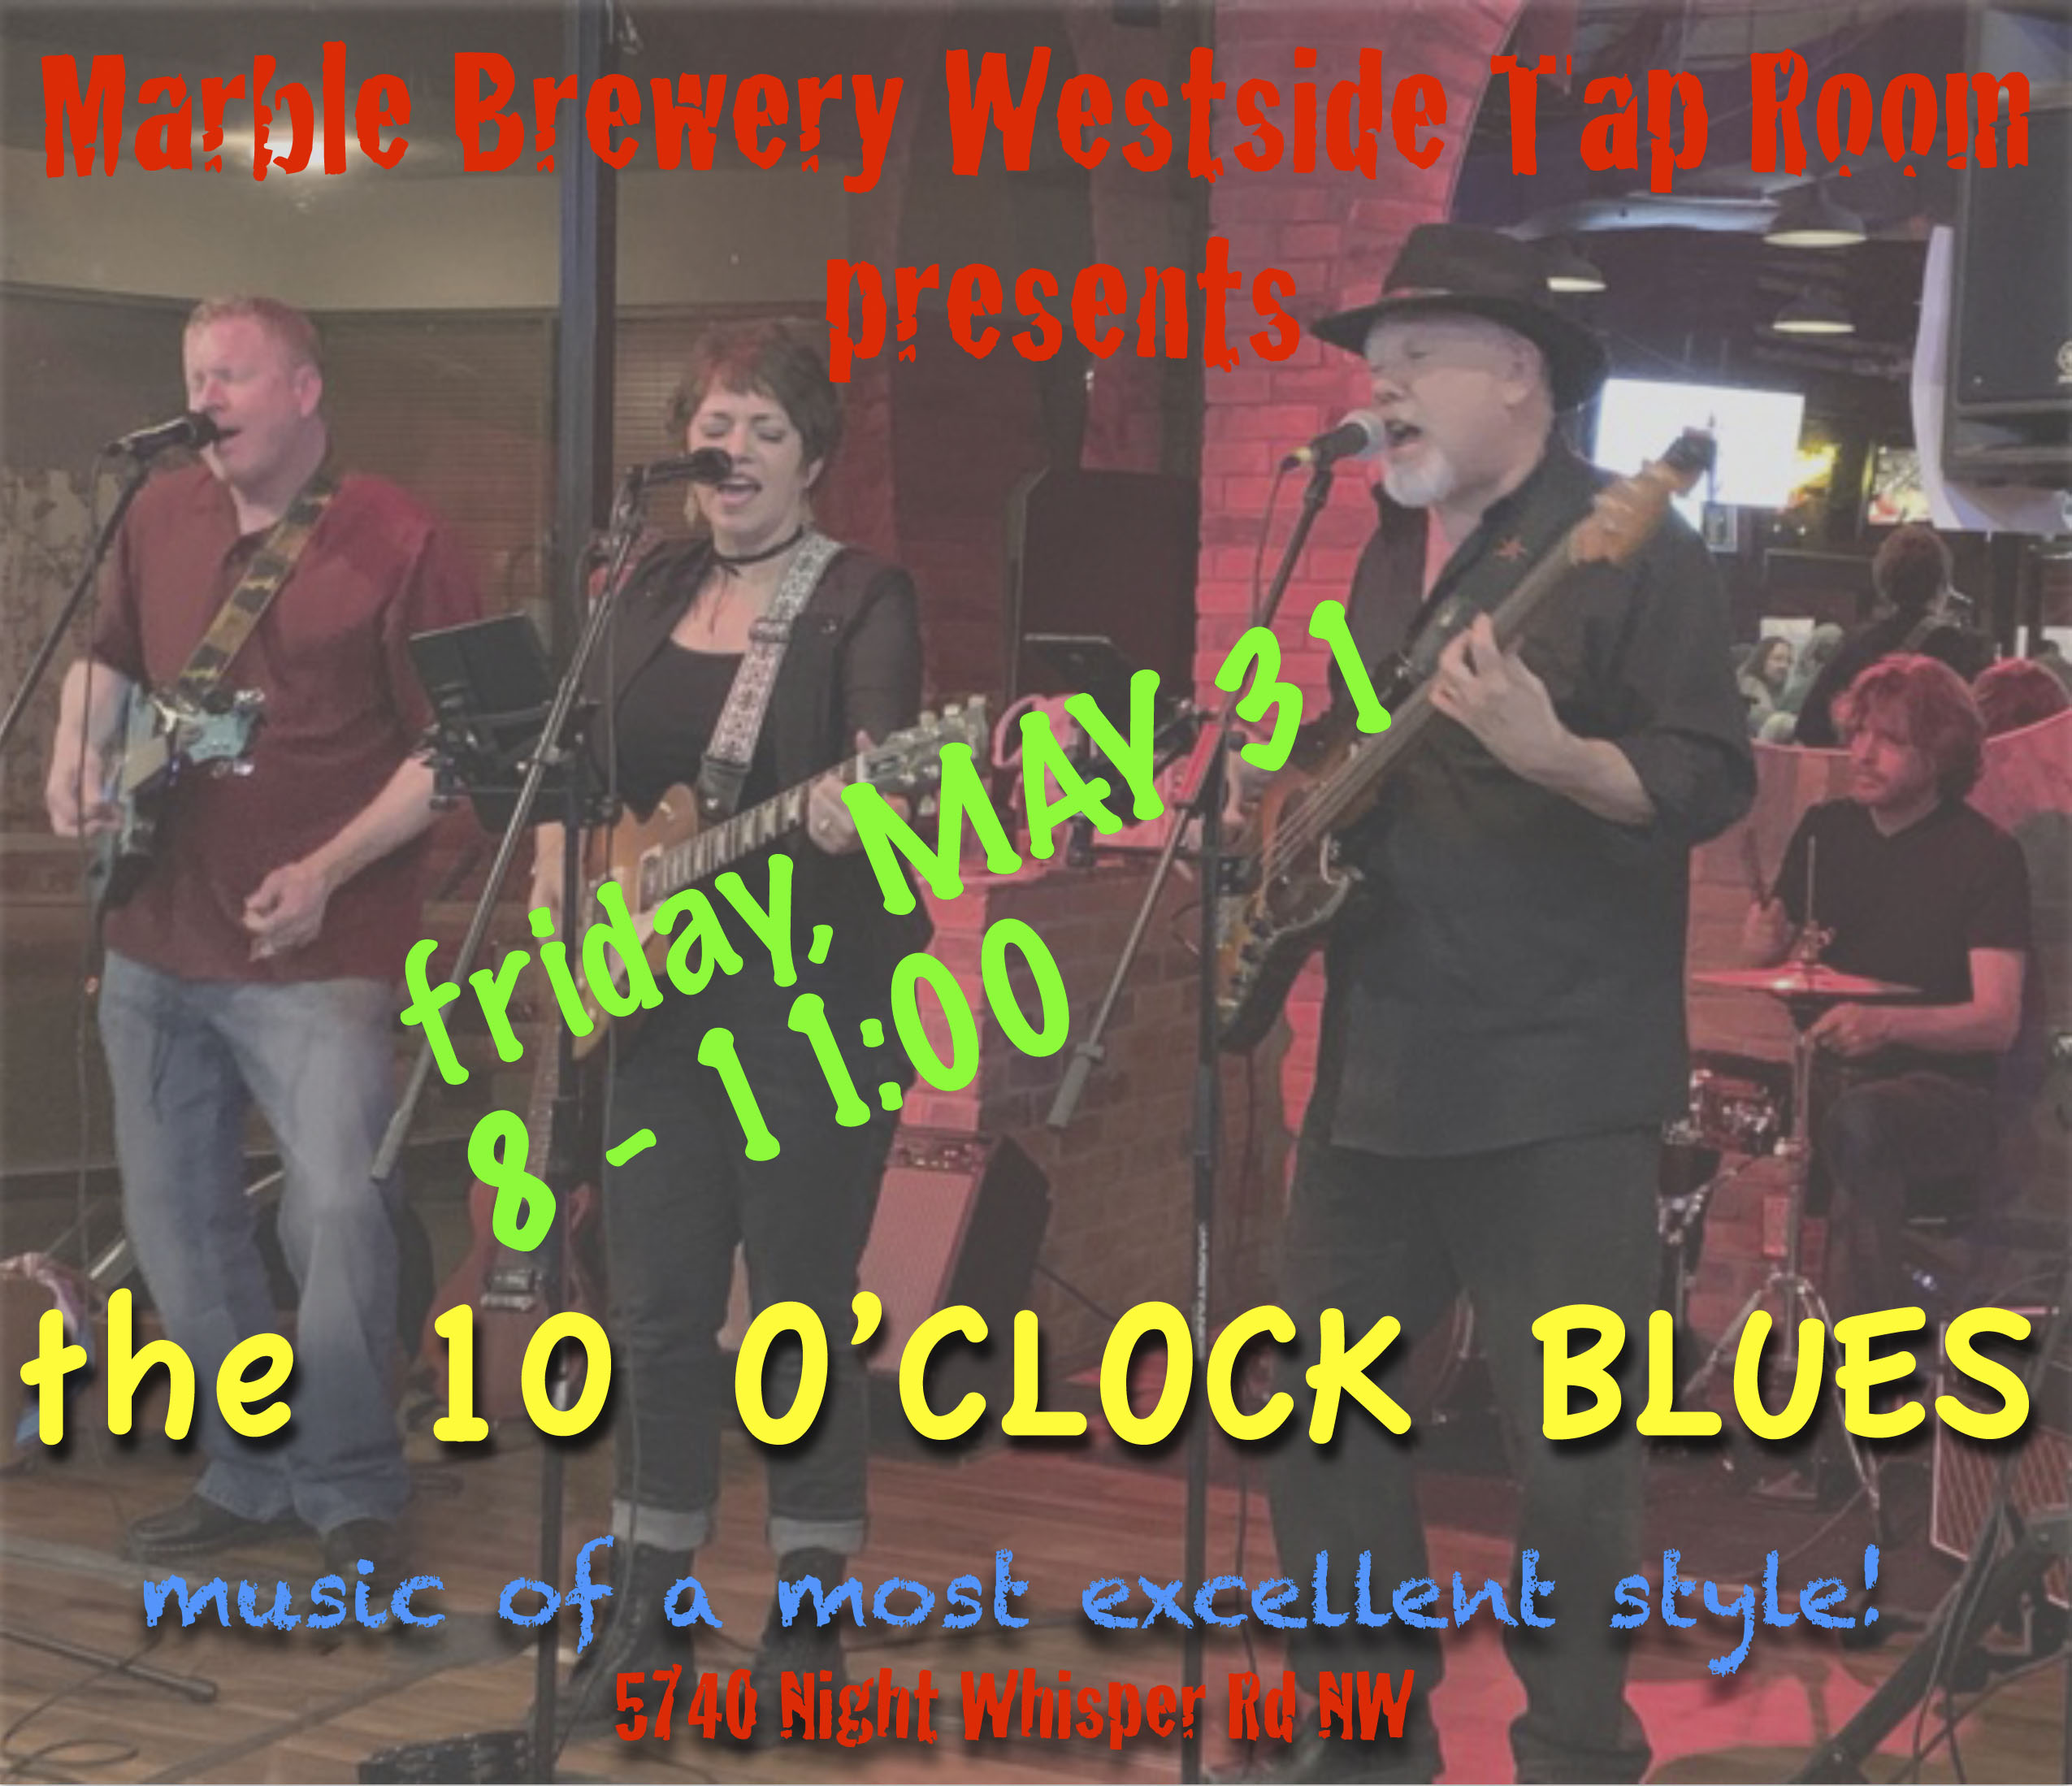 10 O'clock Blues ? Blues At Marble Brewery Westside Tap Room, Albuquerque photo